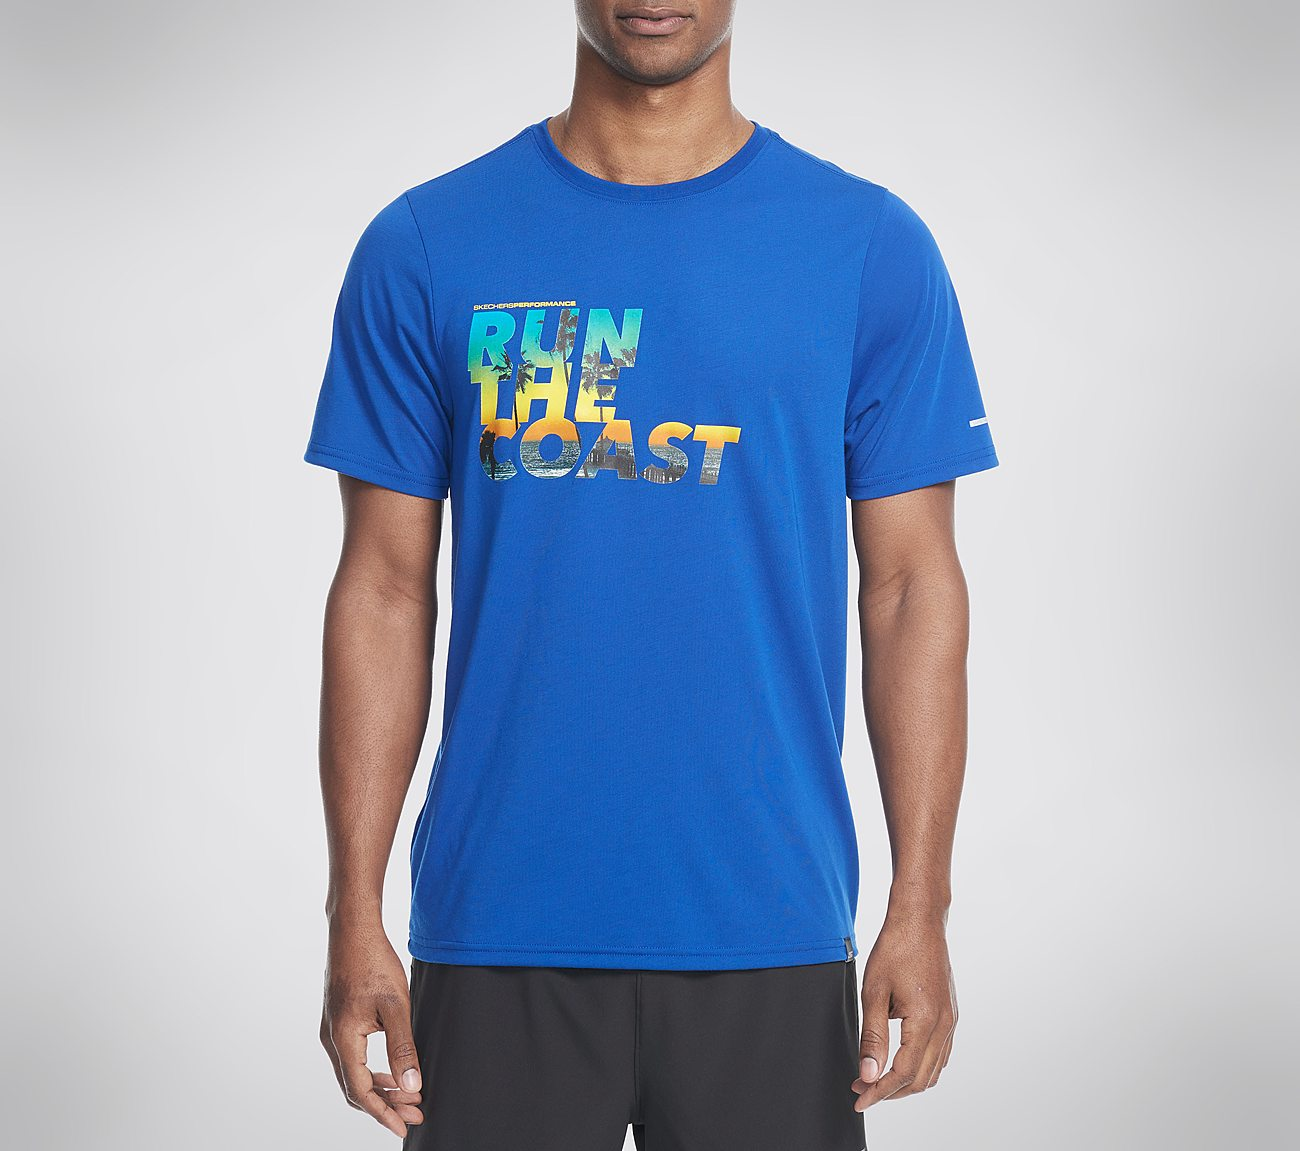 504dc3115 Buy SKECHERS Run the Coast Tee Shirt Apparel Shoes only $10.00